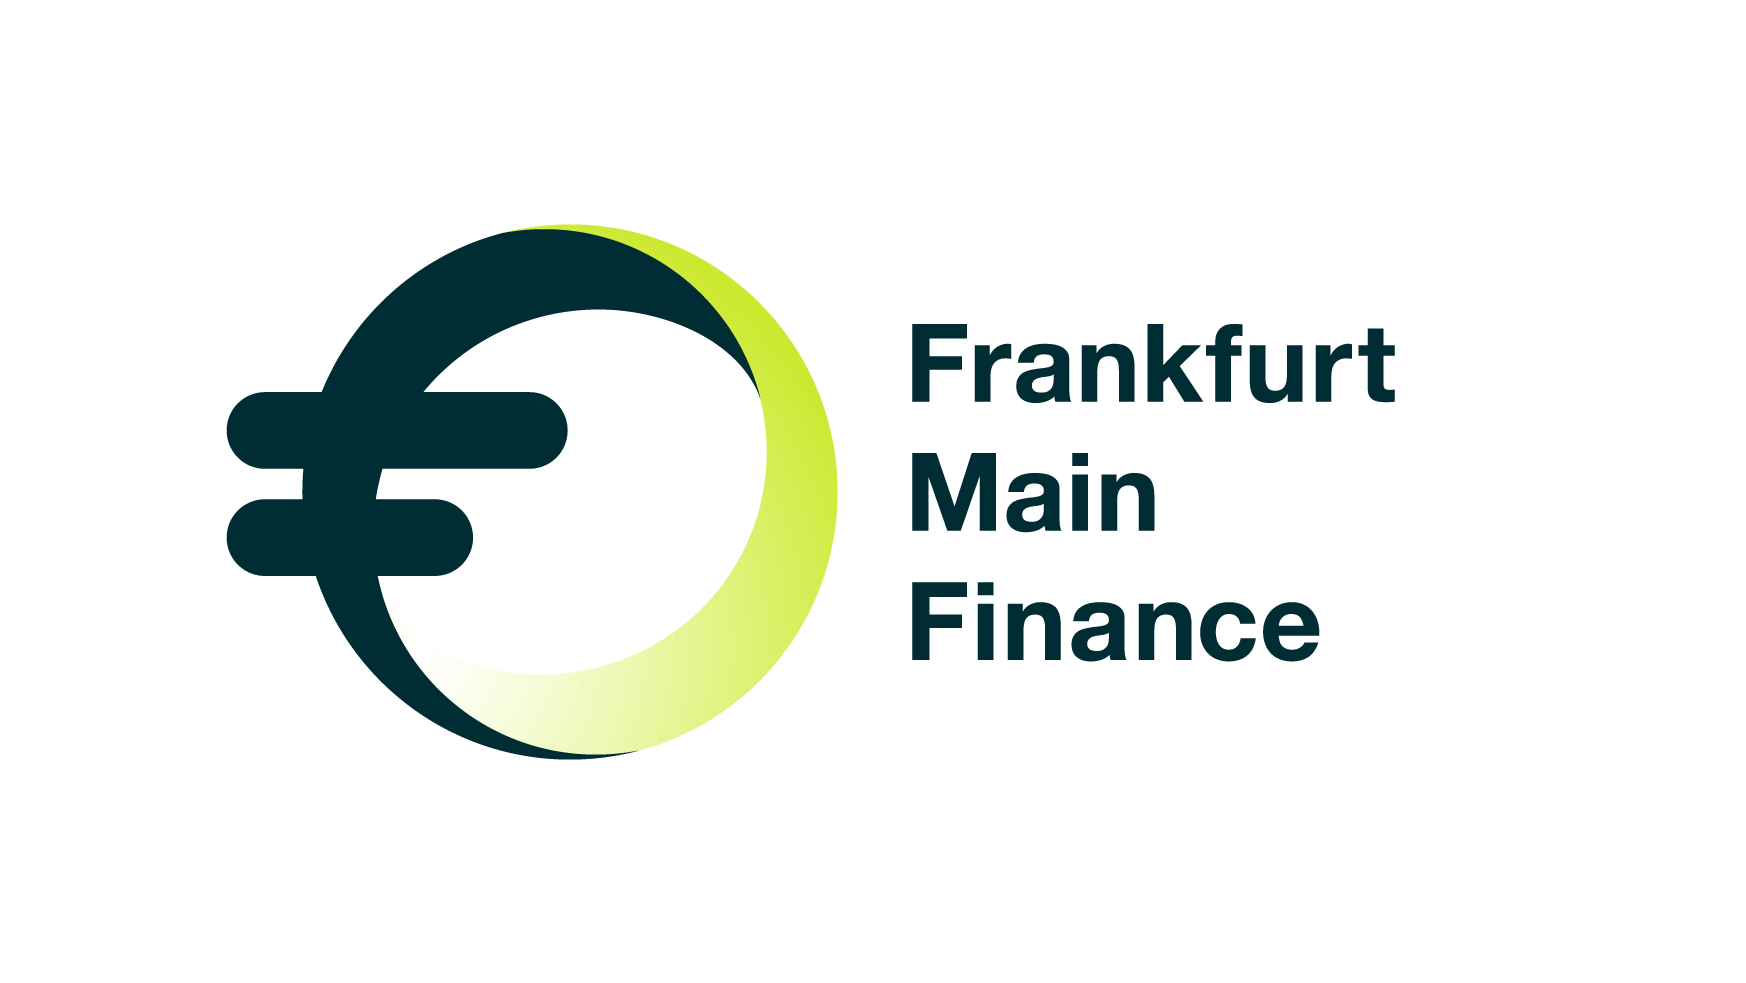 FrankfurtMainFinance